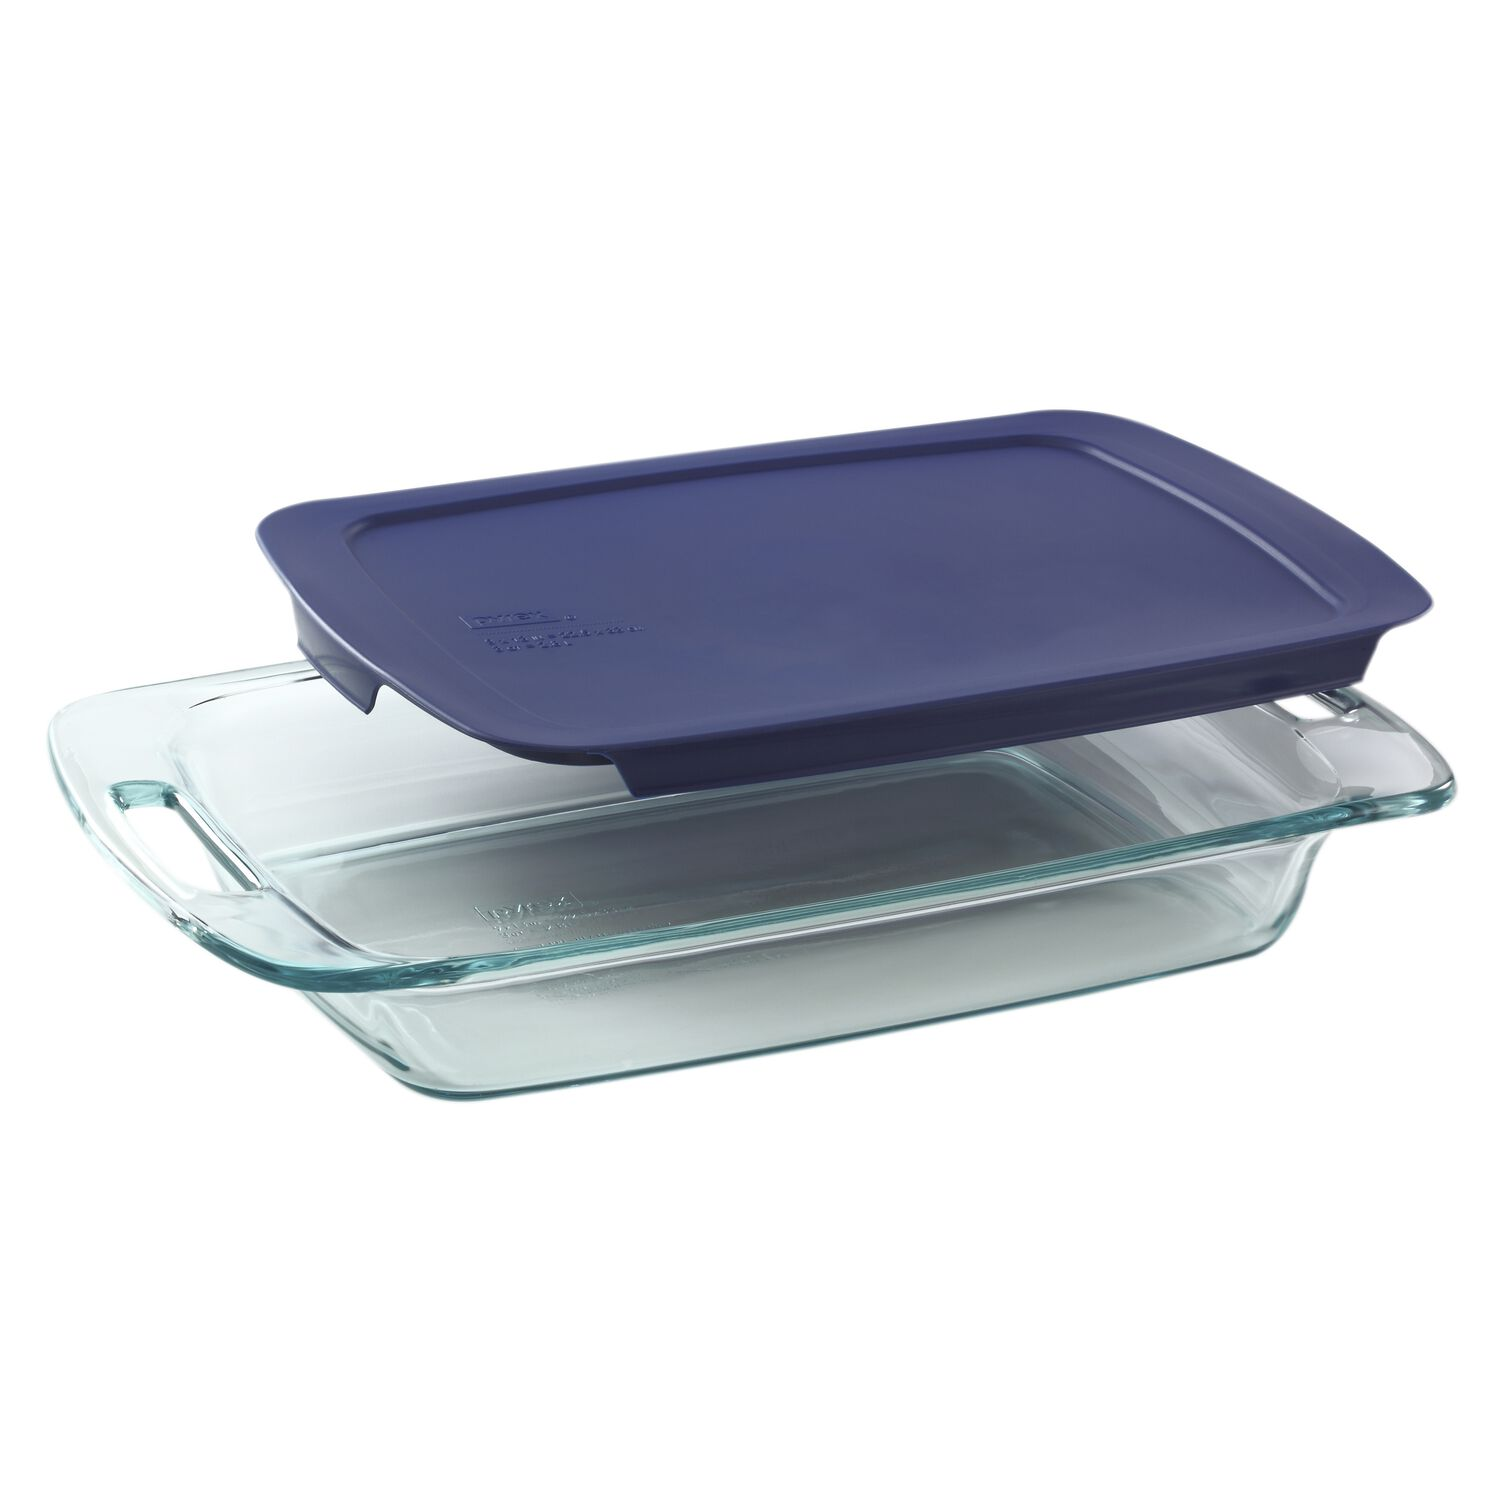 Baking Cakes With Glass Pan